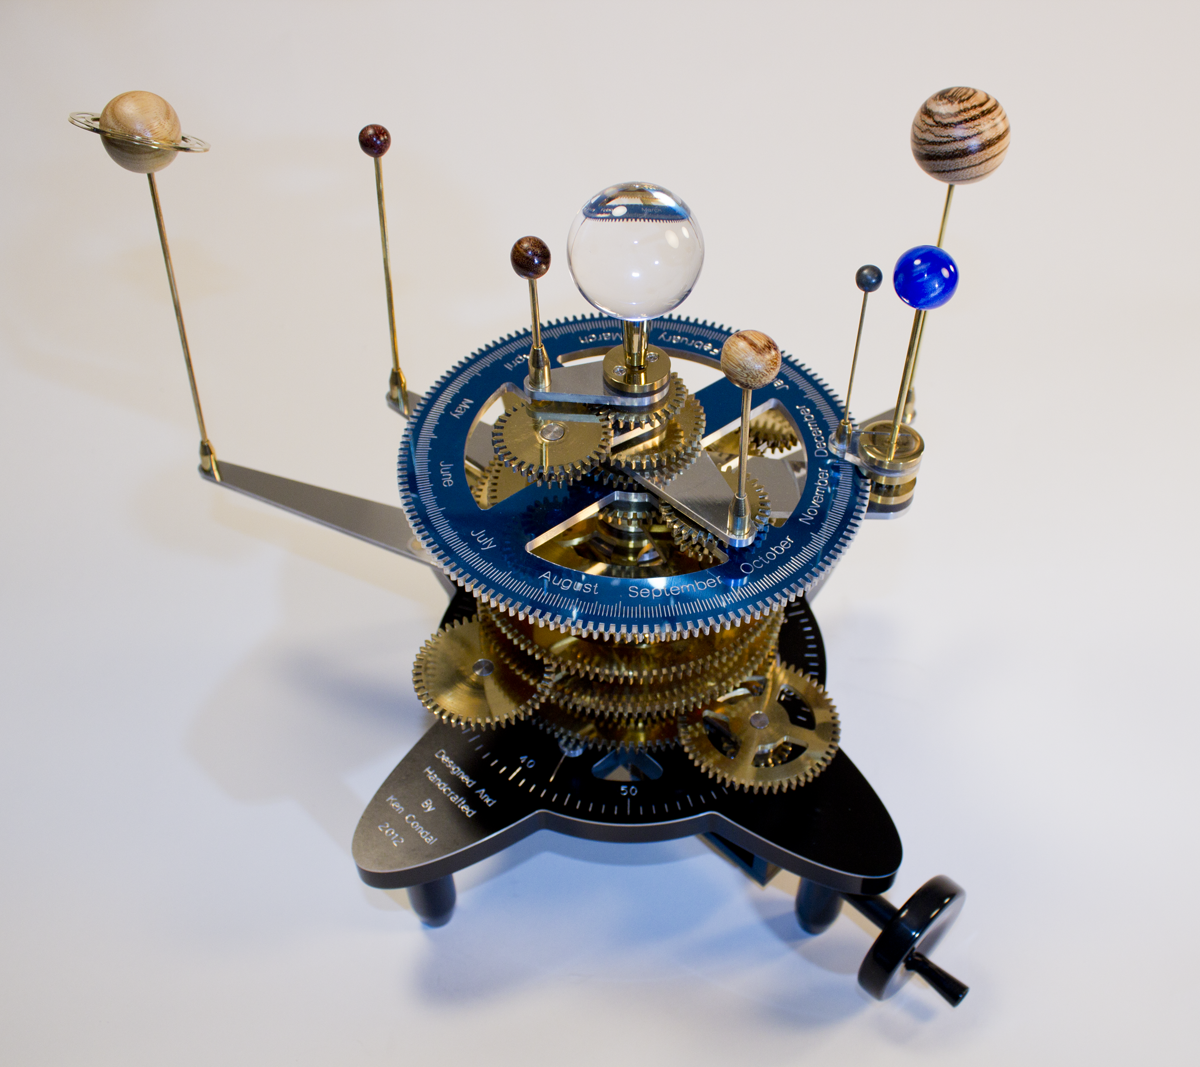 Orrery images